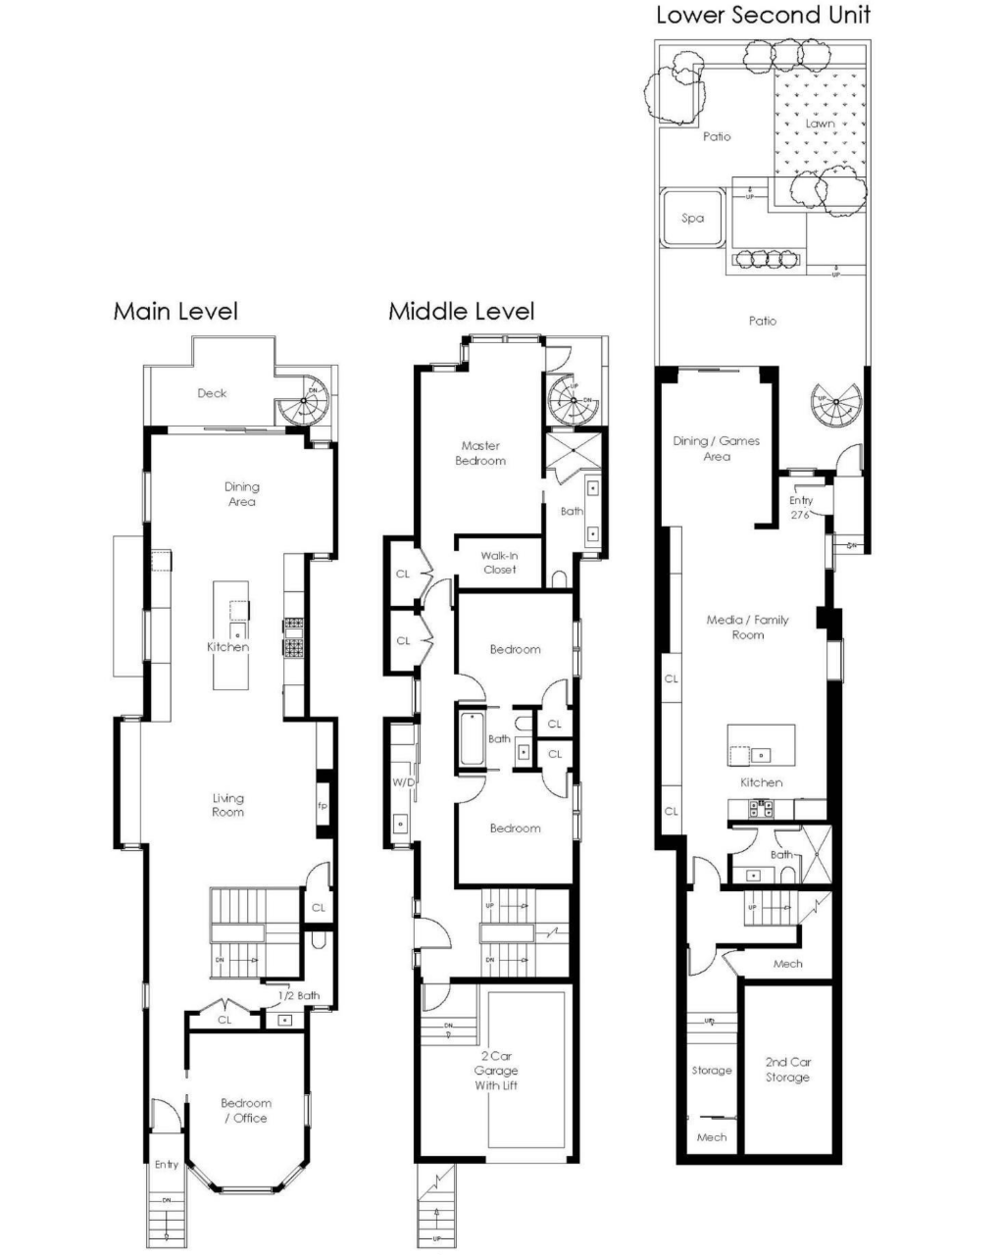 276-278 Hartford St - Floor Plan